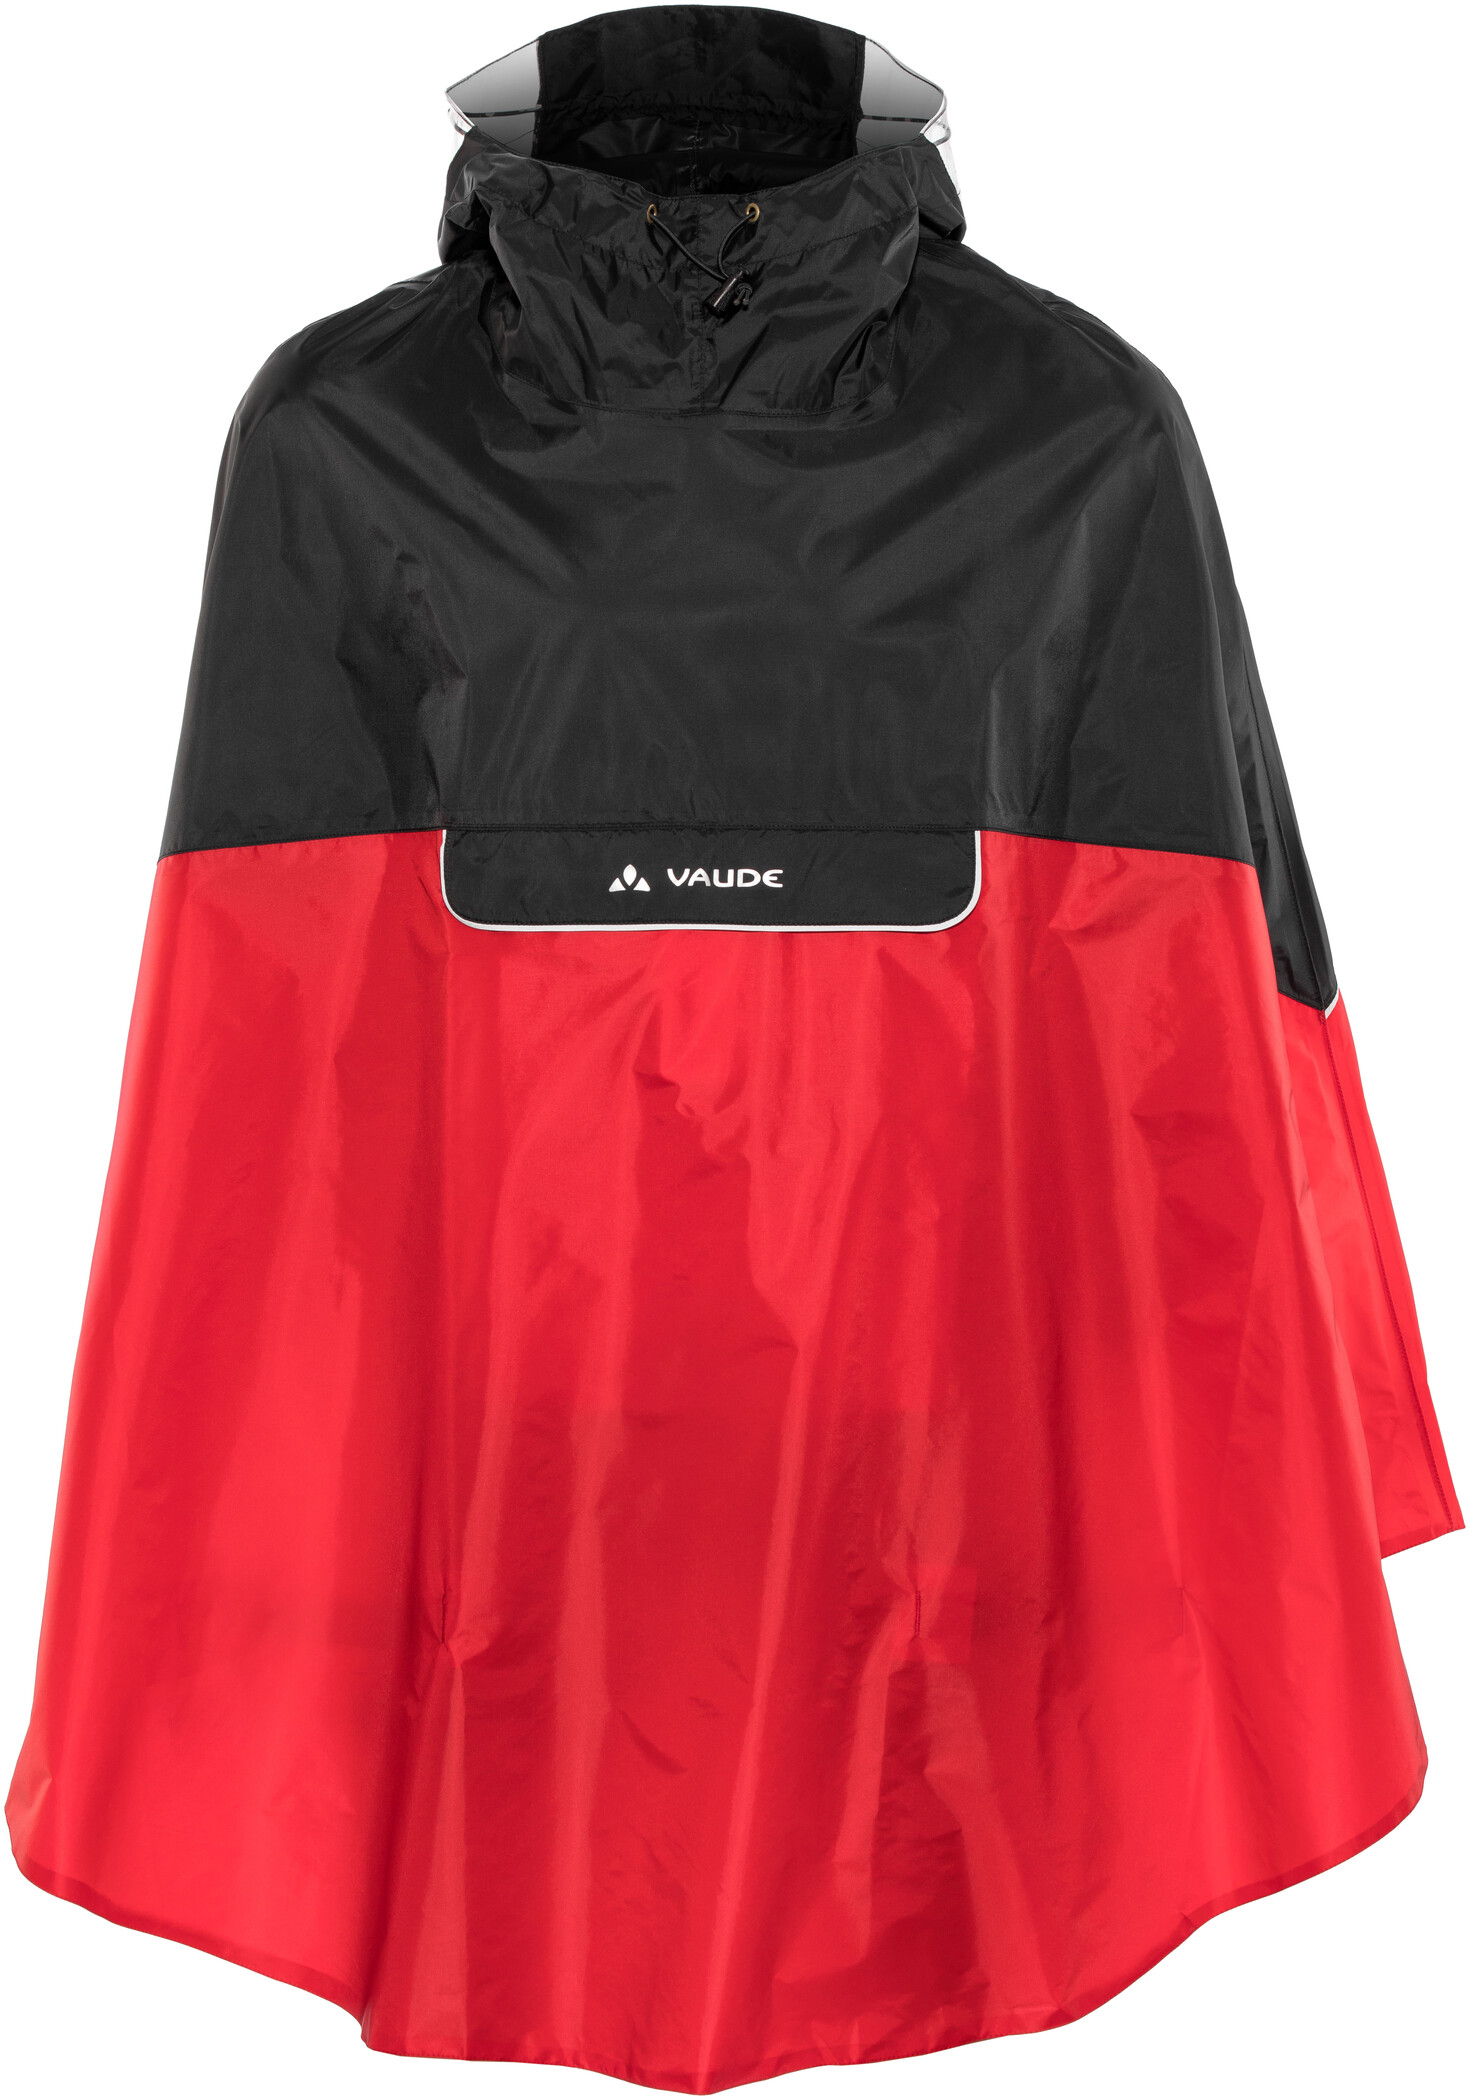 VAUDE Covero II Poncho, indian red (2019)   Jackets